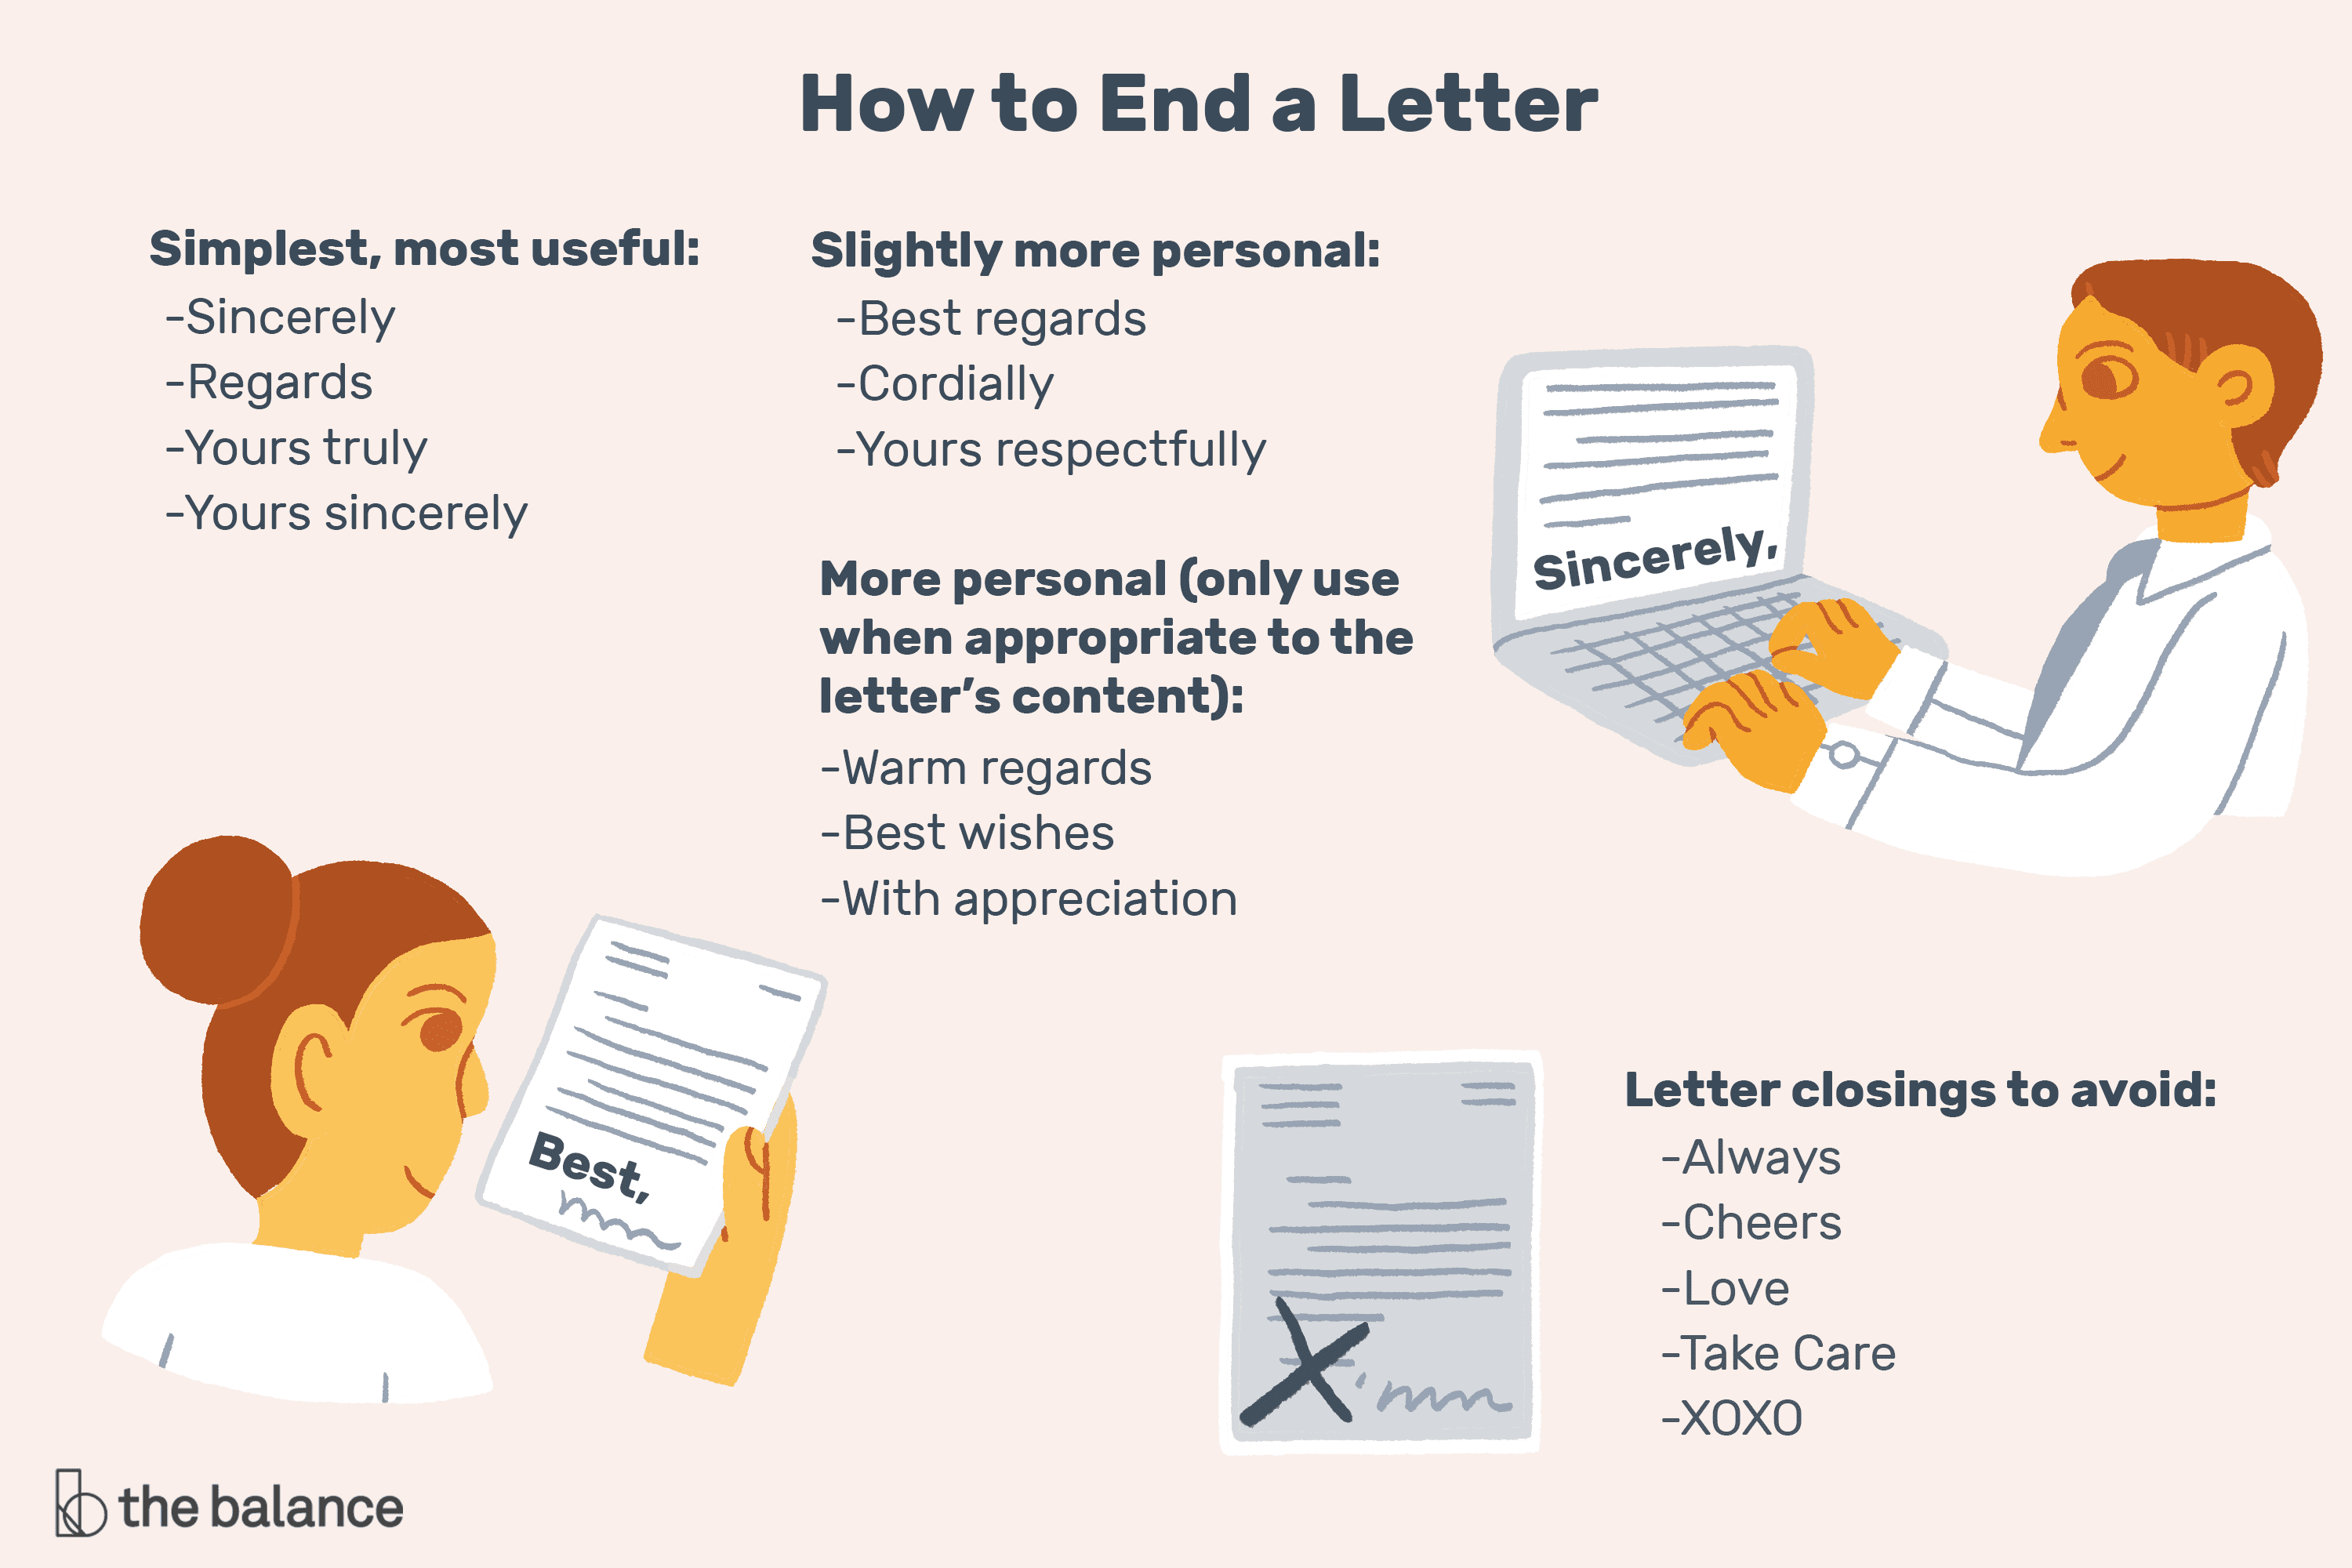 How To End A Letter With Closing Examples